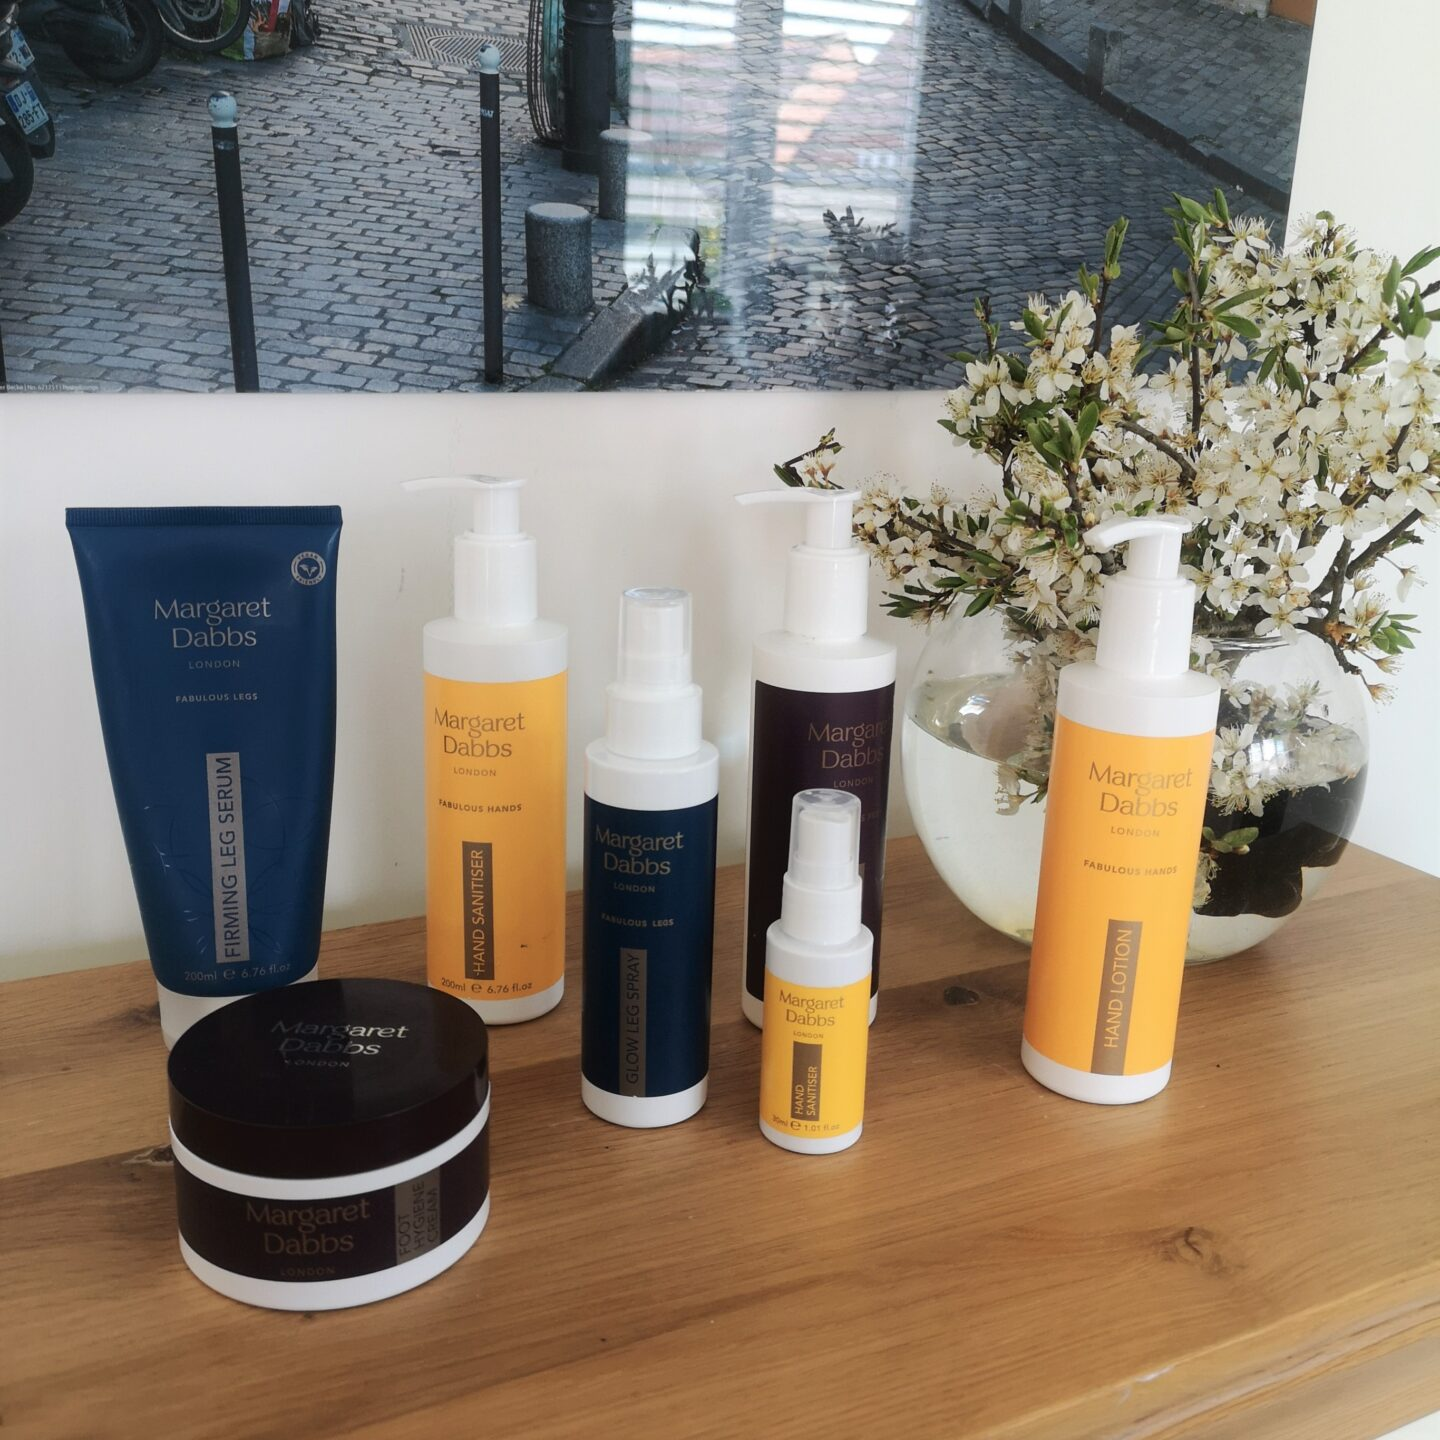 Margaret Dabbs Hands, Legs & Feet Body Essentials Set,Blog Anniversary Giveaway, Footcare, Handcare, Margaret Dabbs London, Giveaway, win, the Frenchie Mummy, Hand and Feet Set, Luxurious Beauty